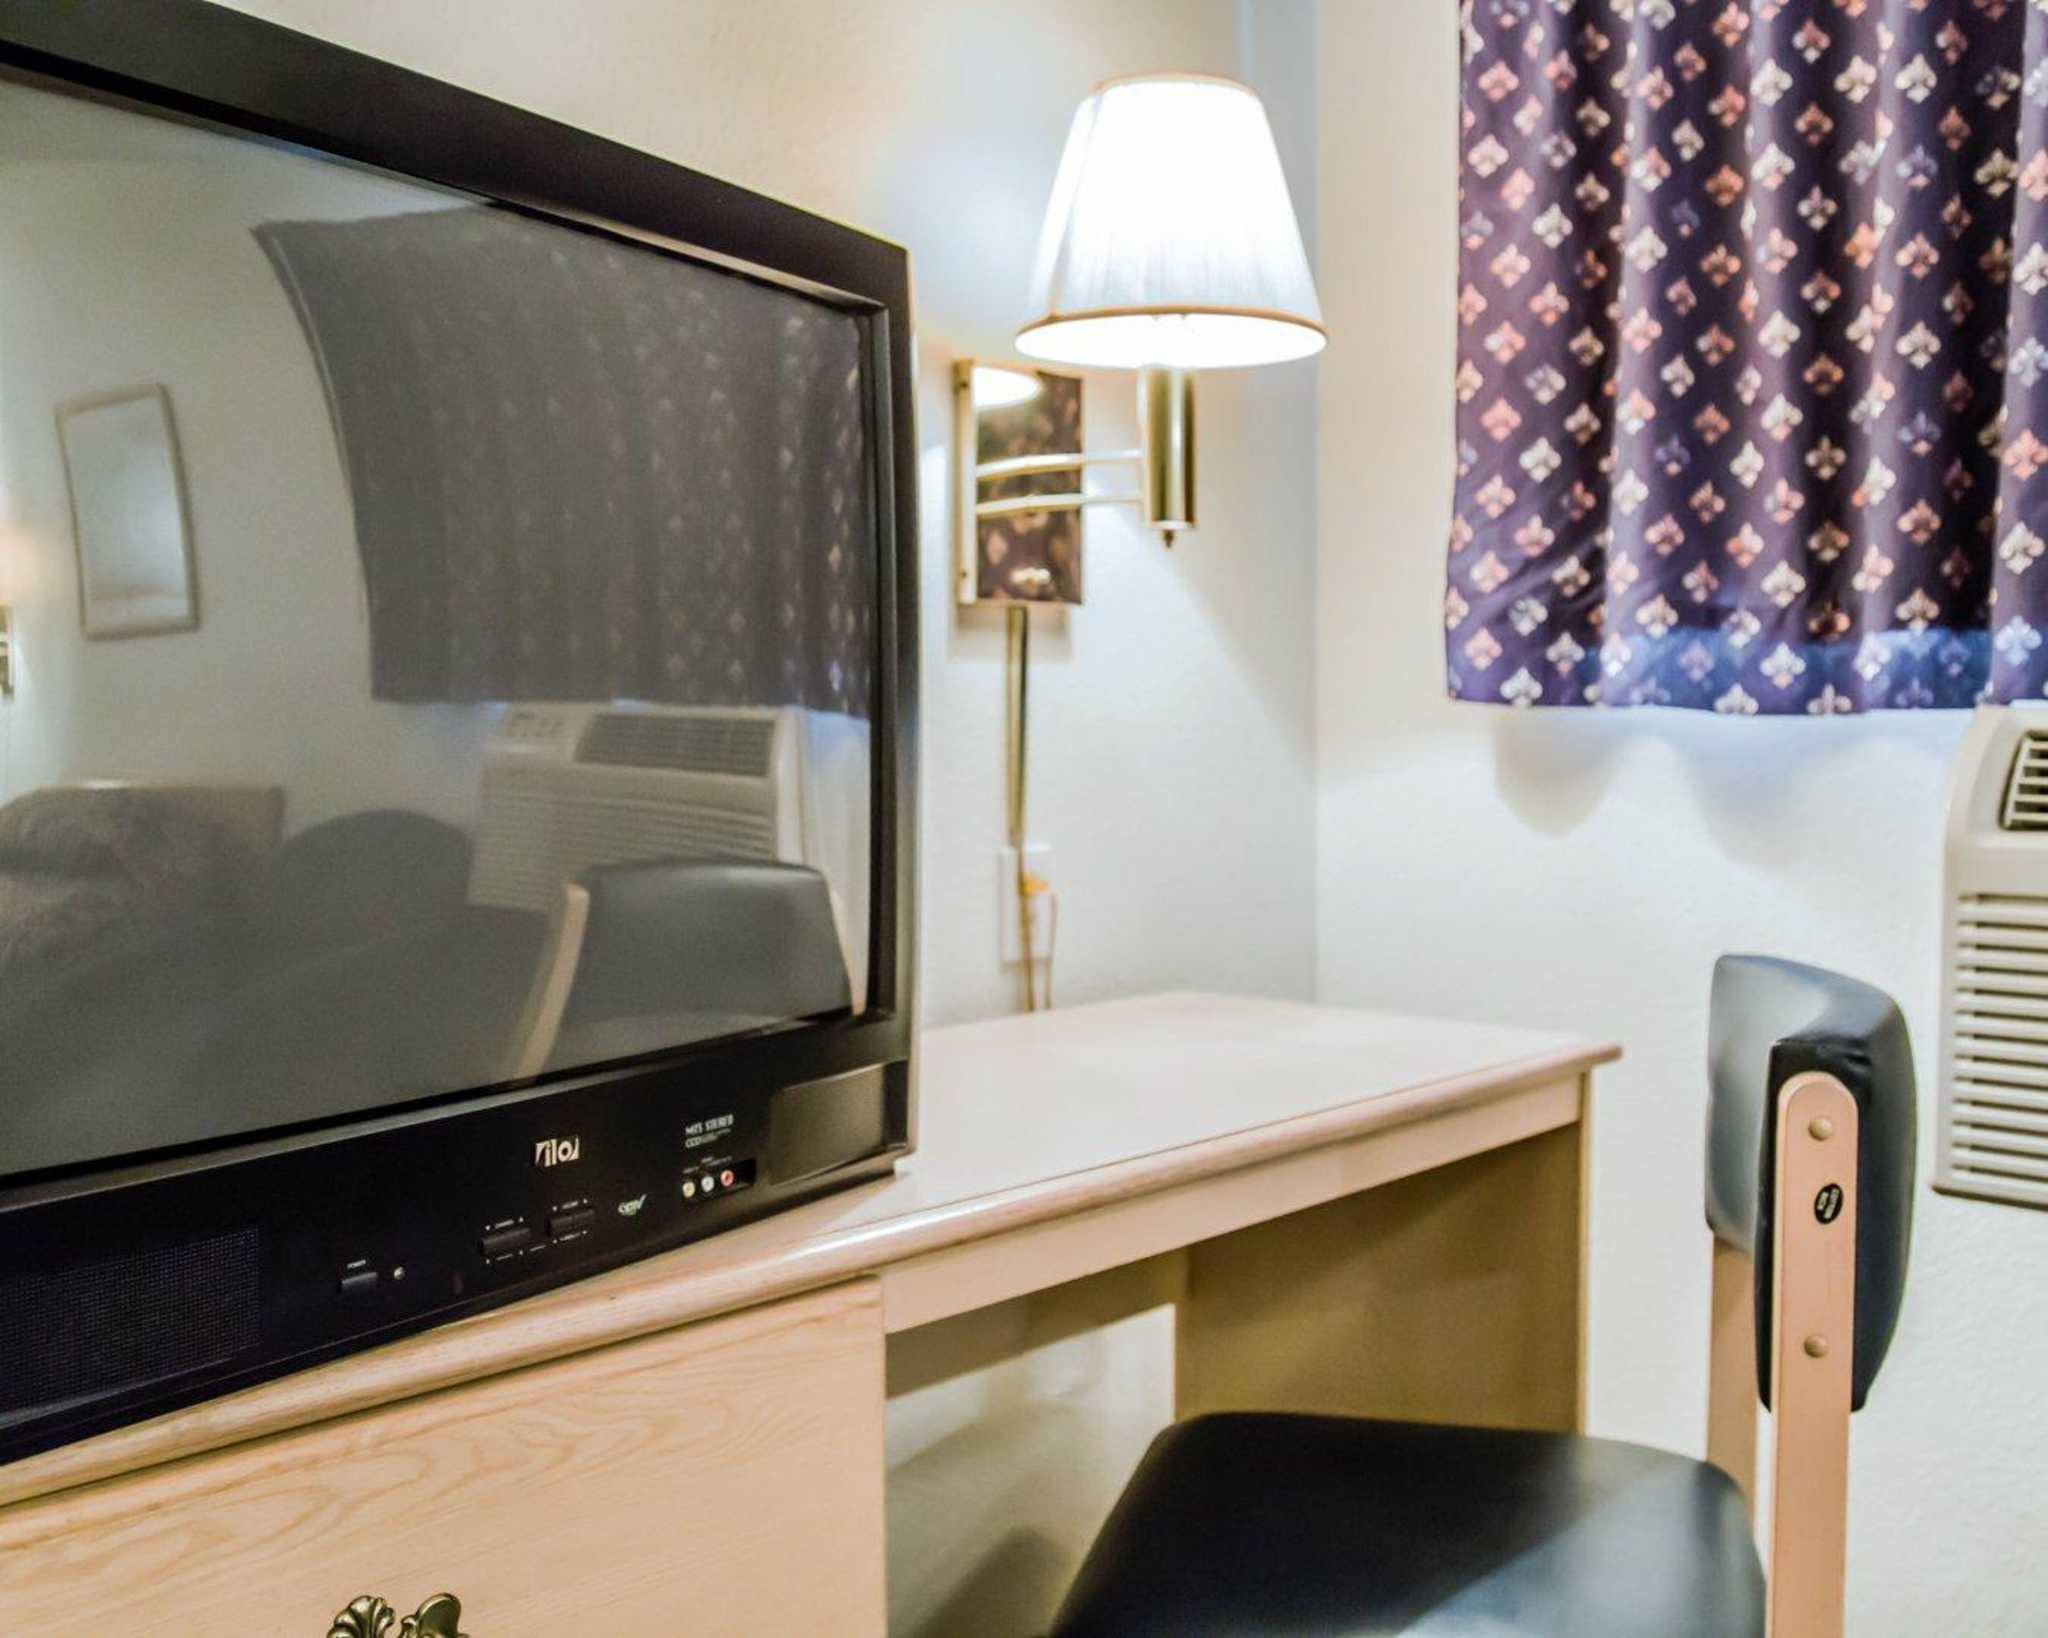 suburban extended stay 4335 williamstown blvd lakeland fl